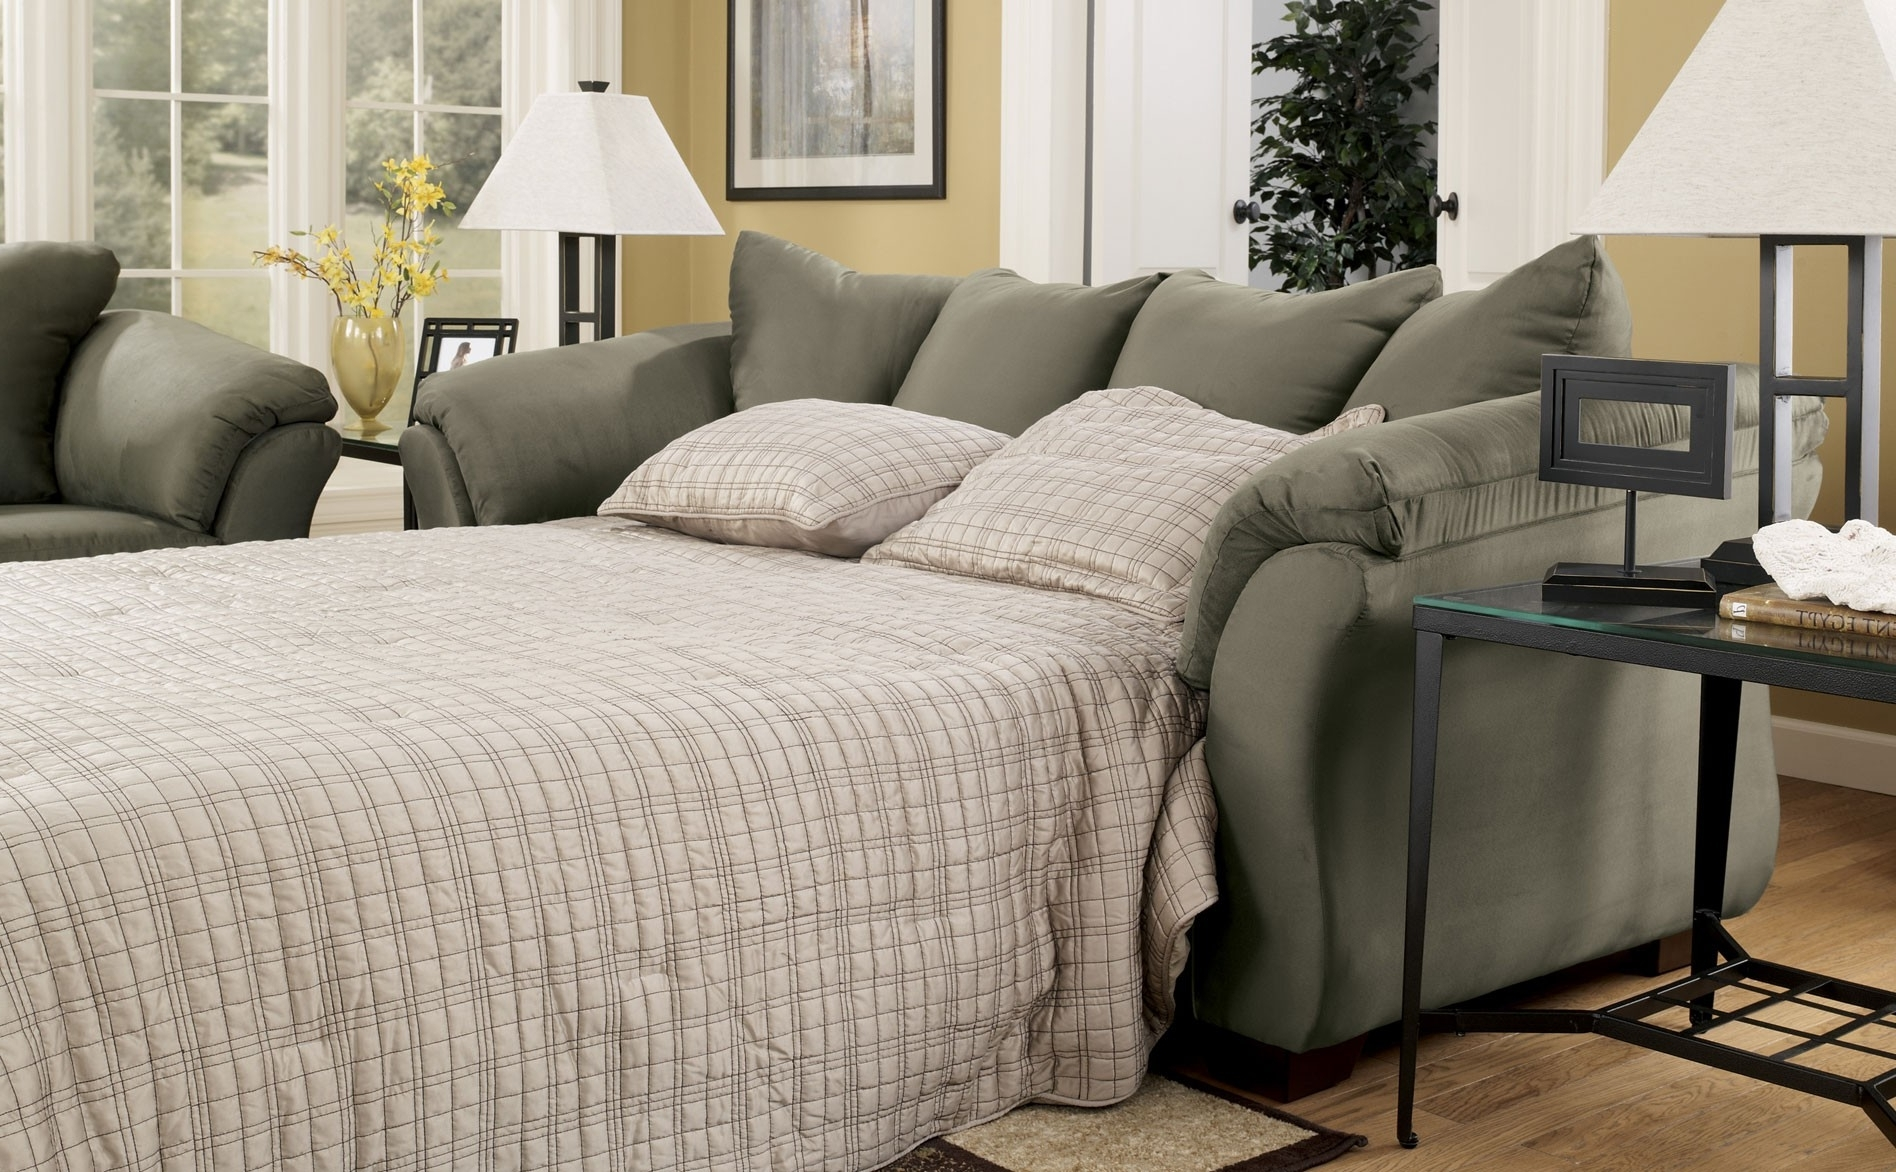 Popular Quincy Il Sectional Sofas Intended For Furniture : Mattress Firm Lancaster Pa Wayfair Mattress Firm (View 11 of 15)